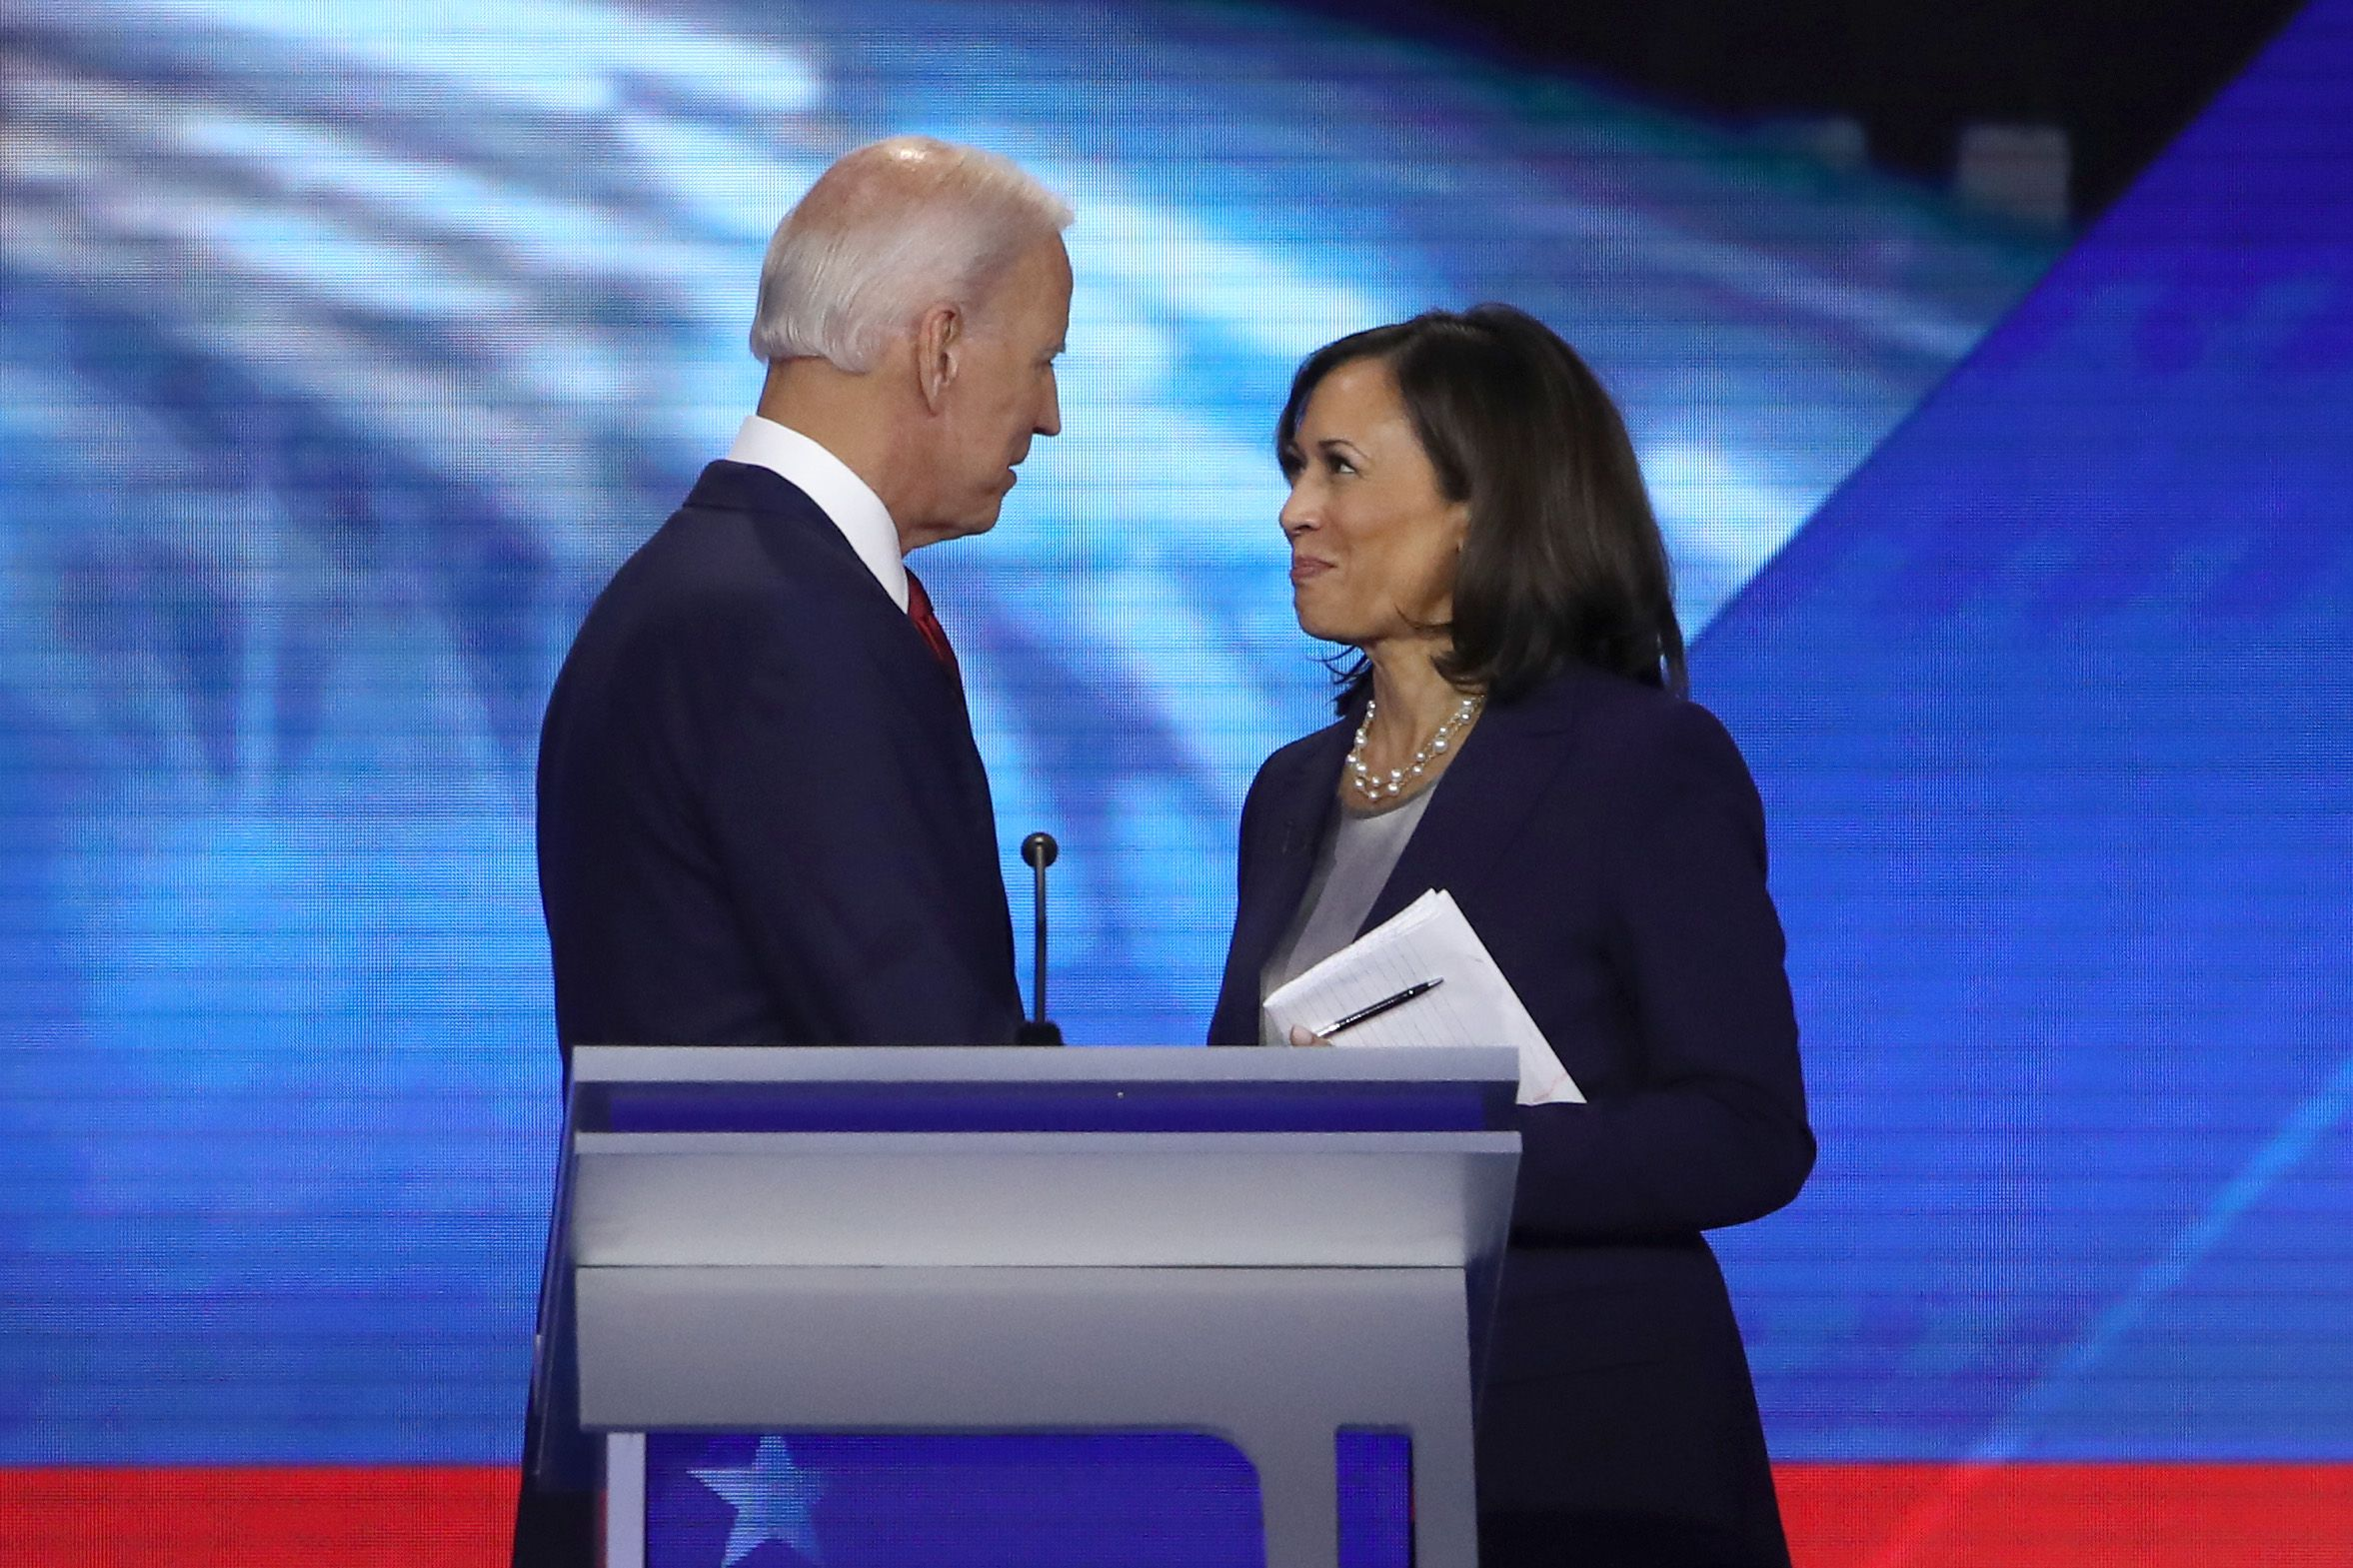 2020 Democratic Party vice presidential candidate selection